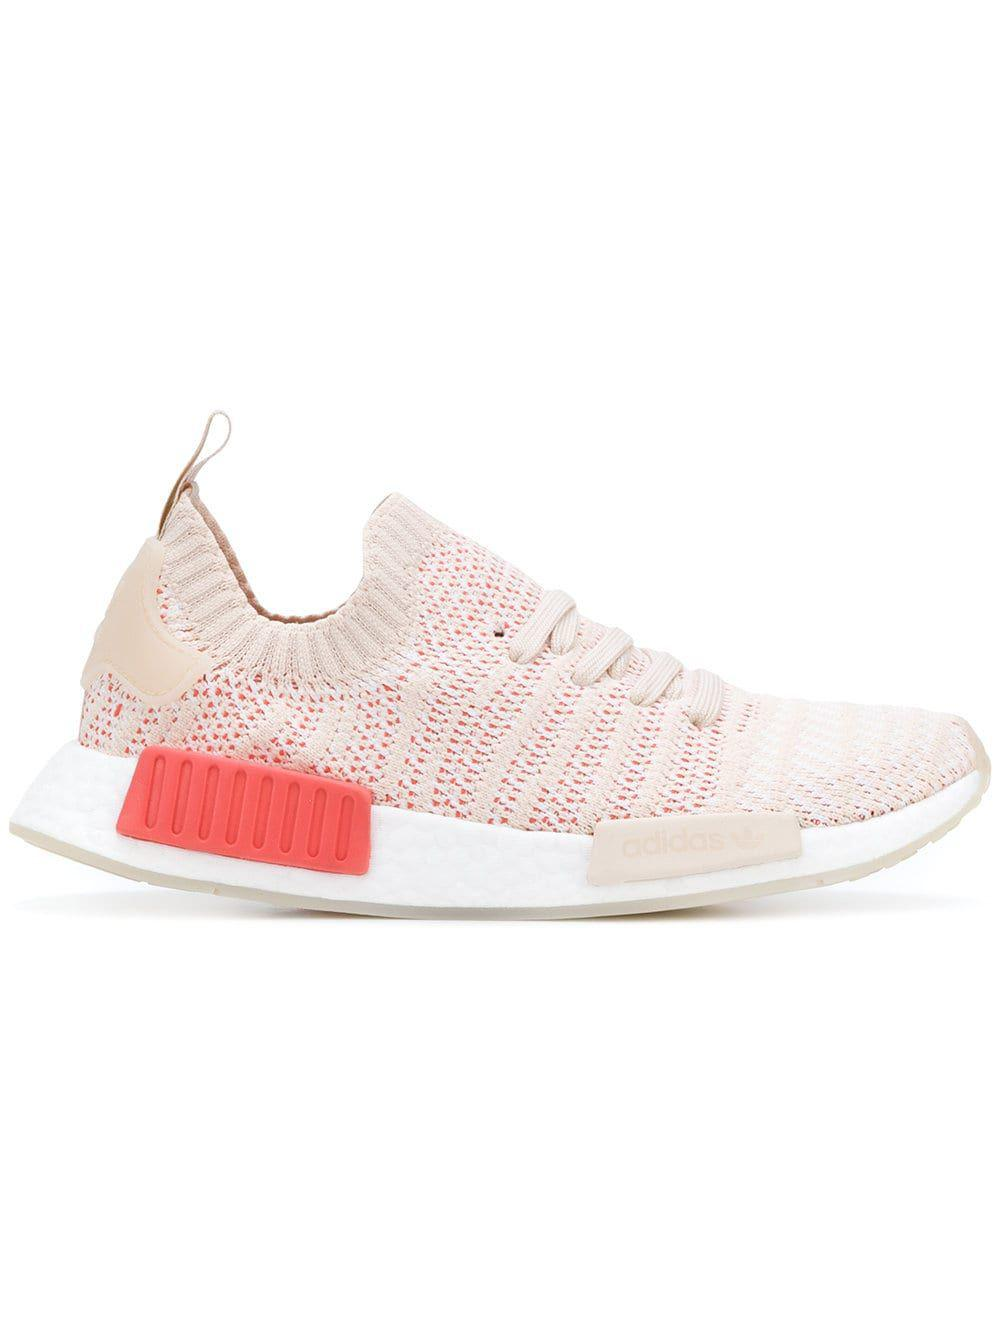 release date 549eb 85f32 Lyst - Adidas Womens Pink Pvc Sneakers in Pink